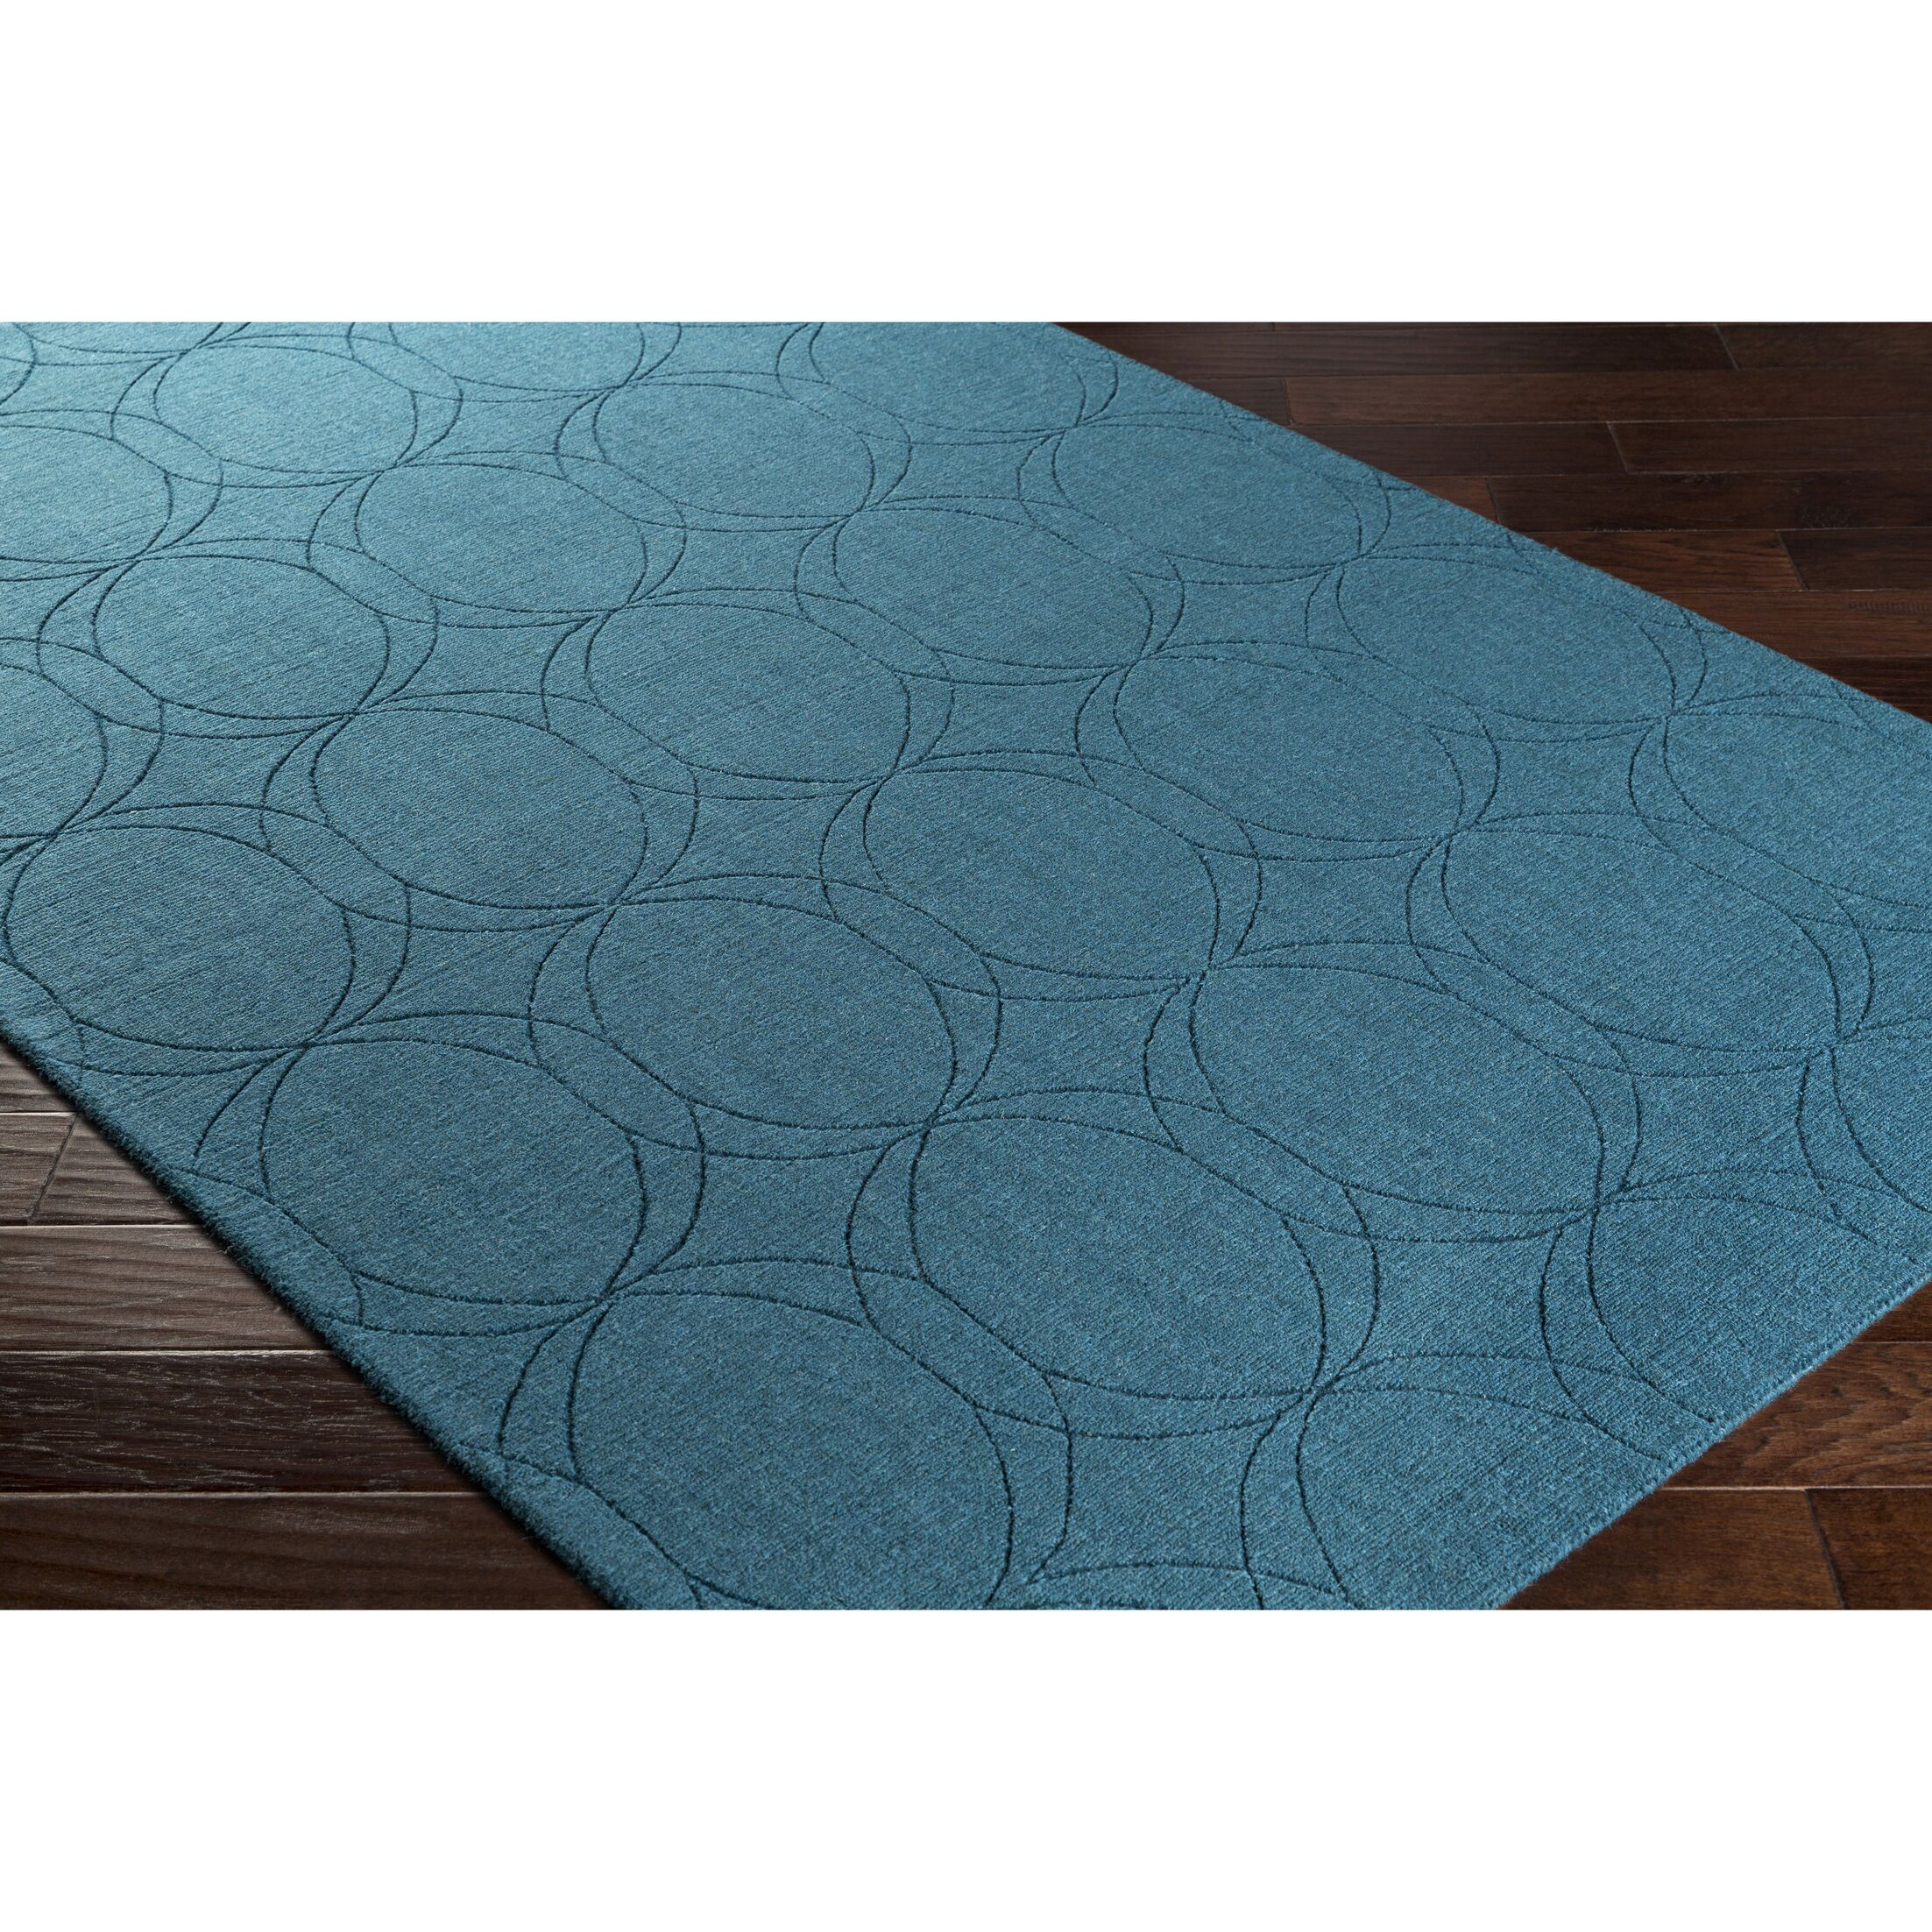 Belle Hand-Loomed Blue Area Rug Rug Size: Rectangle 5' x 7'6